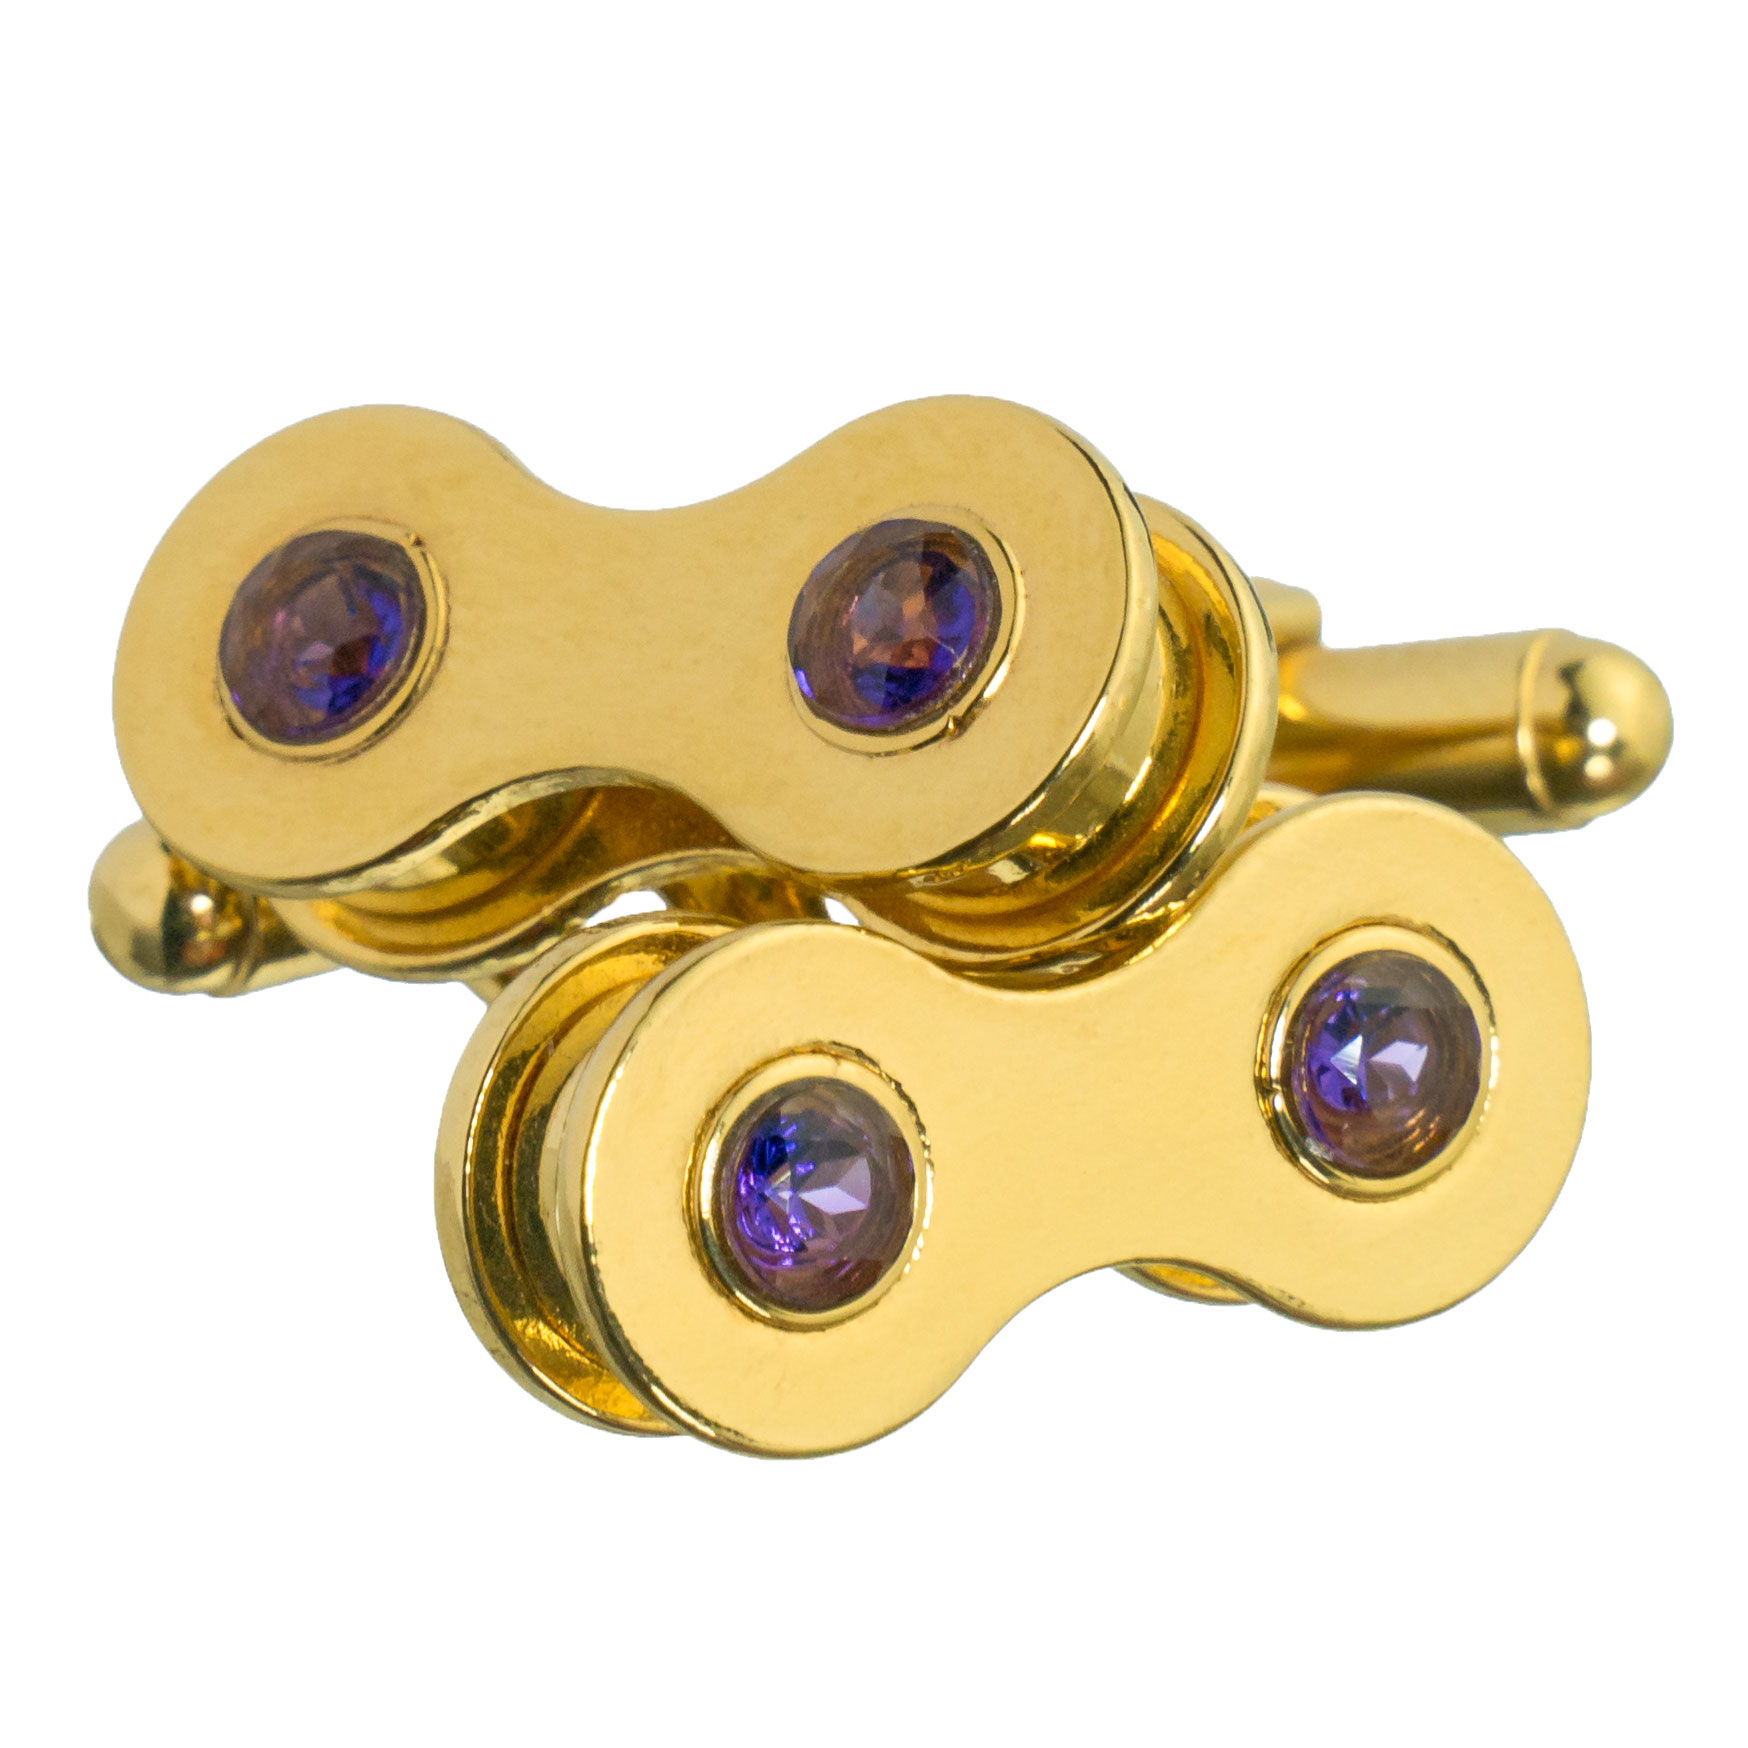 Gold cufflinks with amethyst. A strong contrast that emanates luxury.